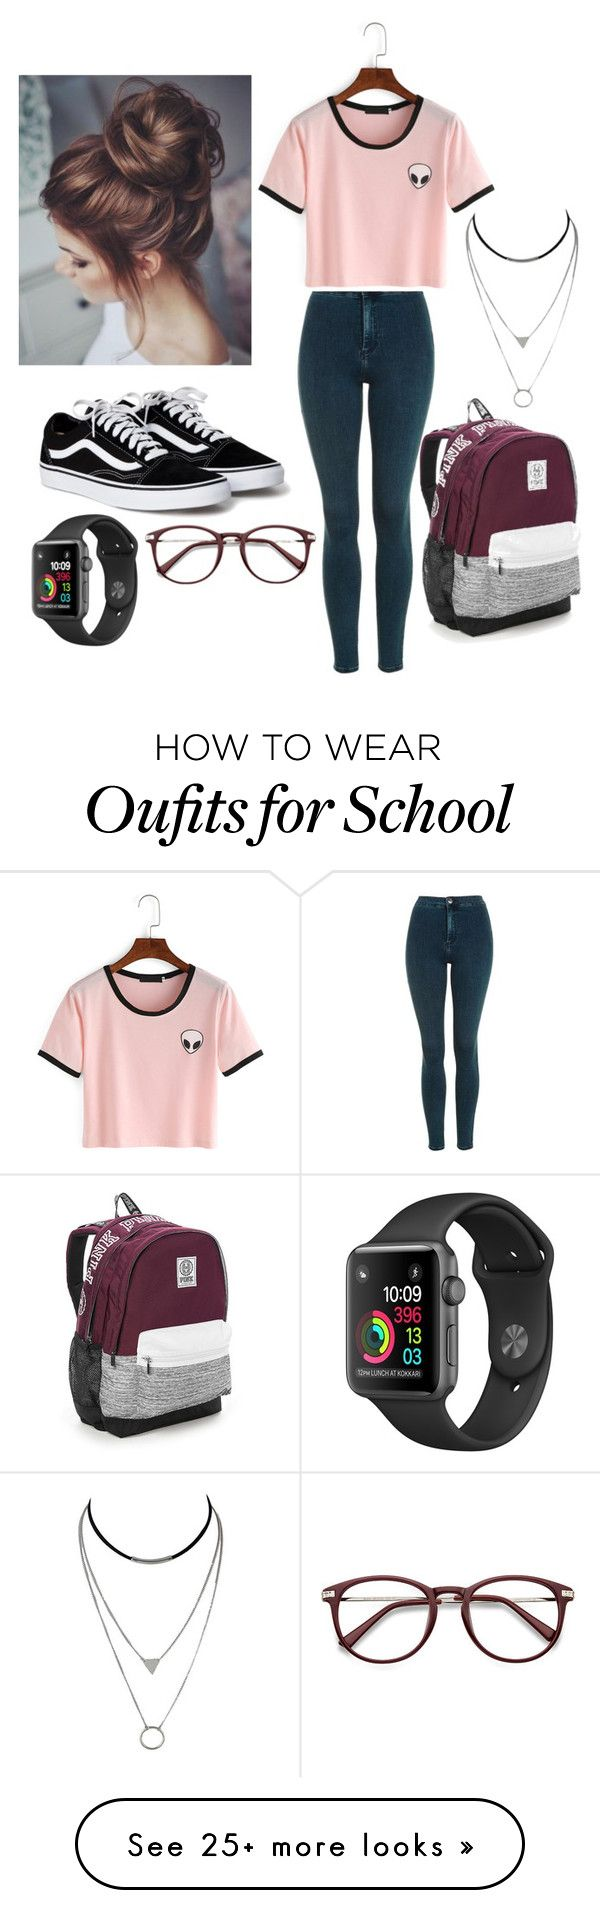 """school"" by andreabergman on Polyvore featuring Topshop and Victoria's Secret"